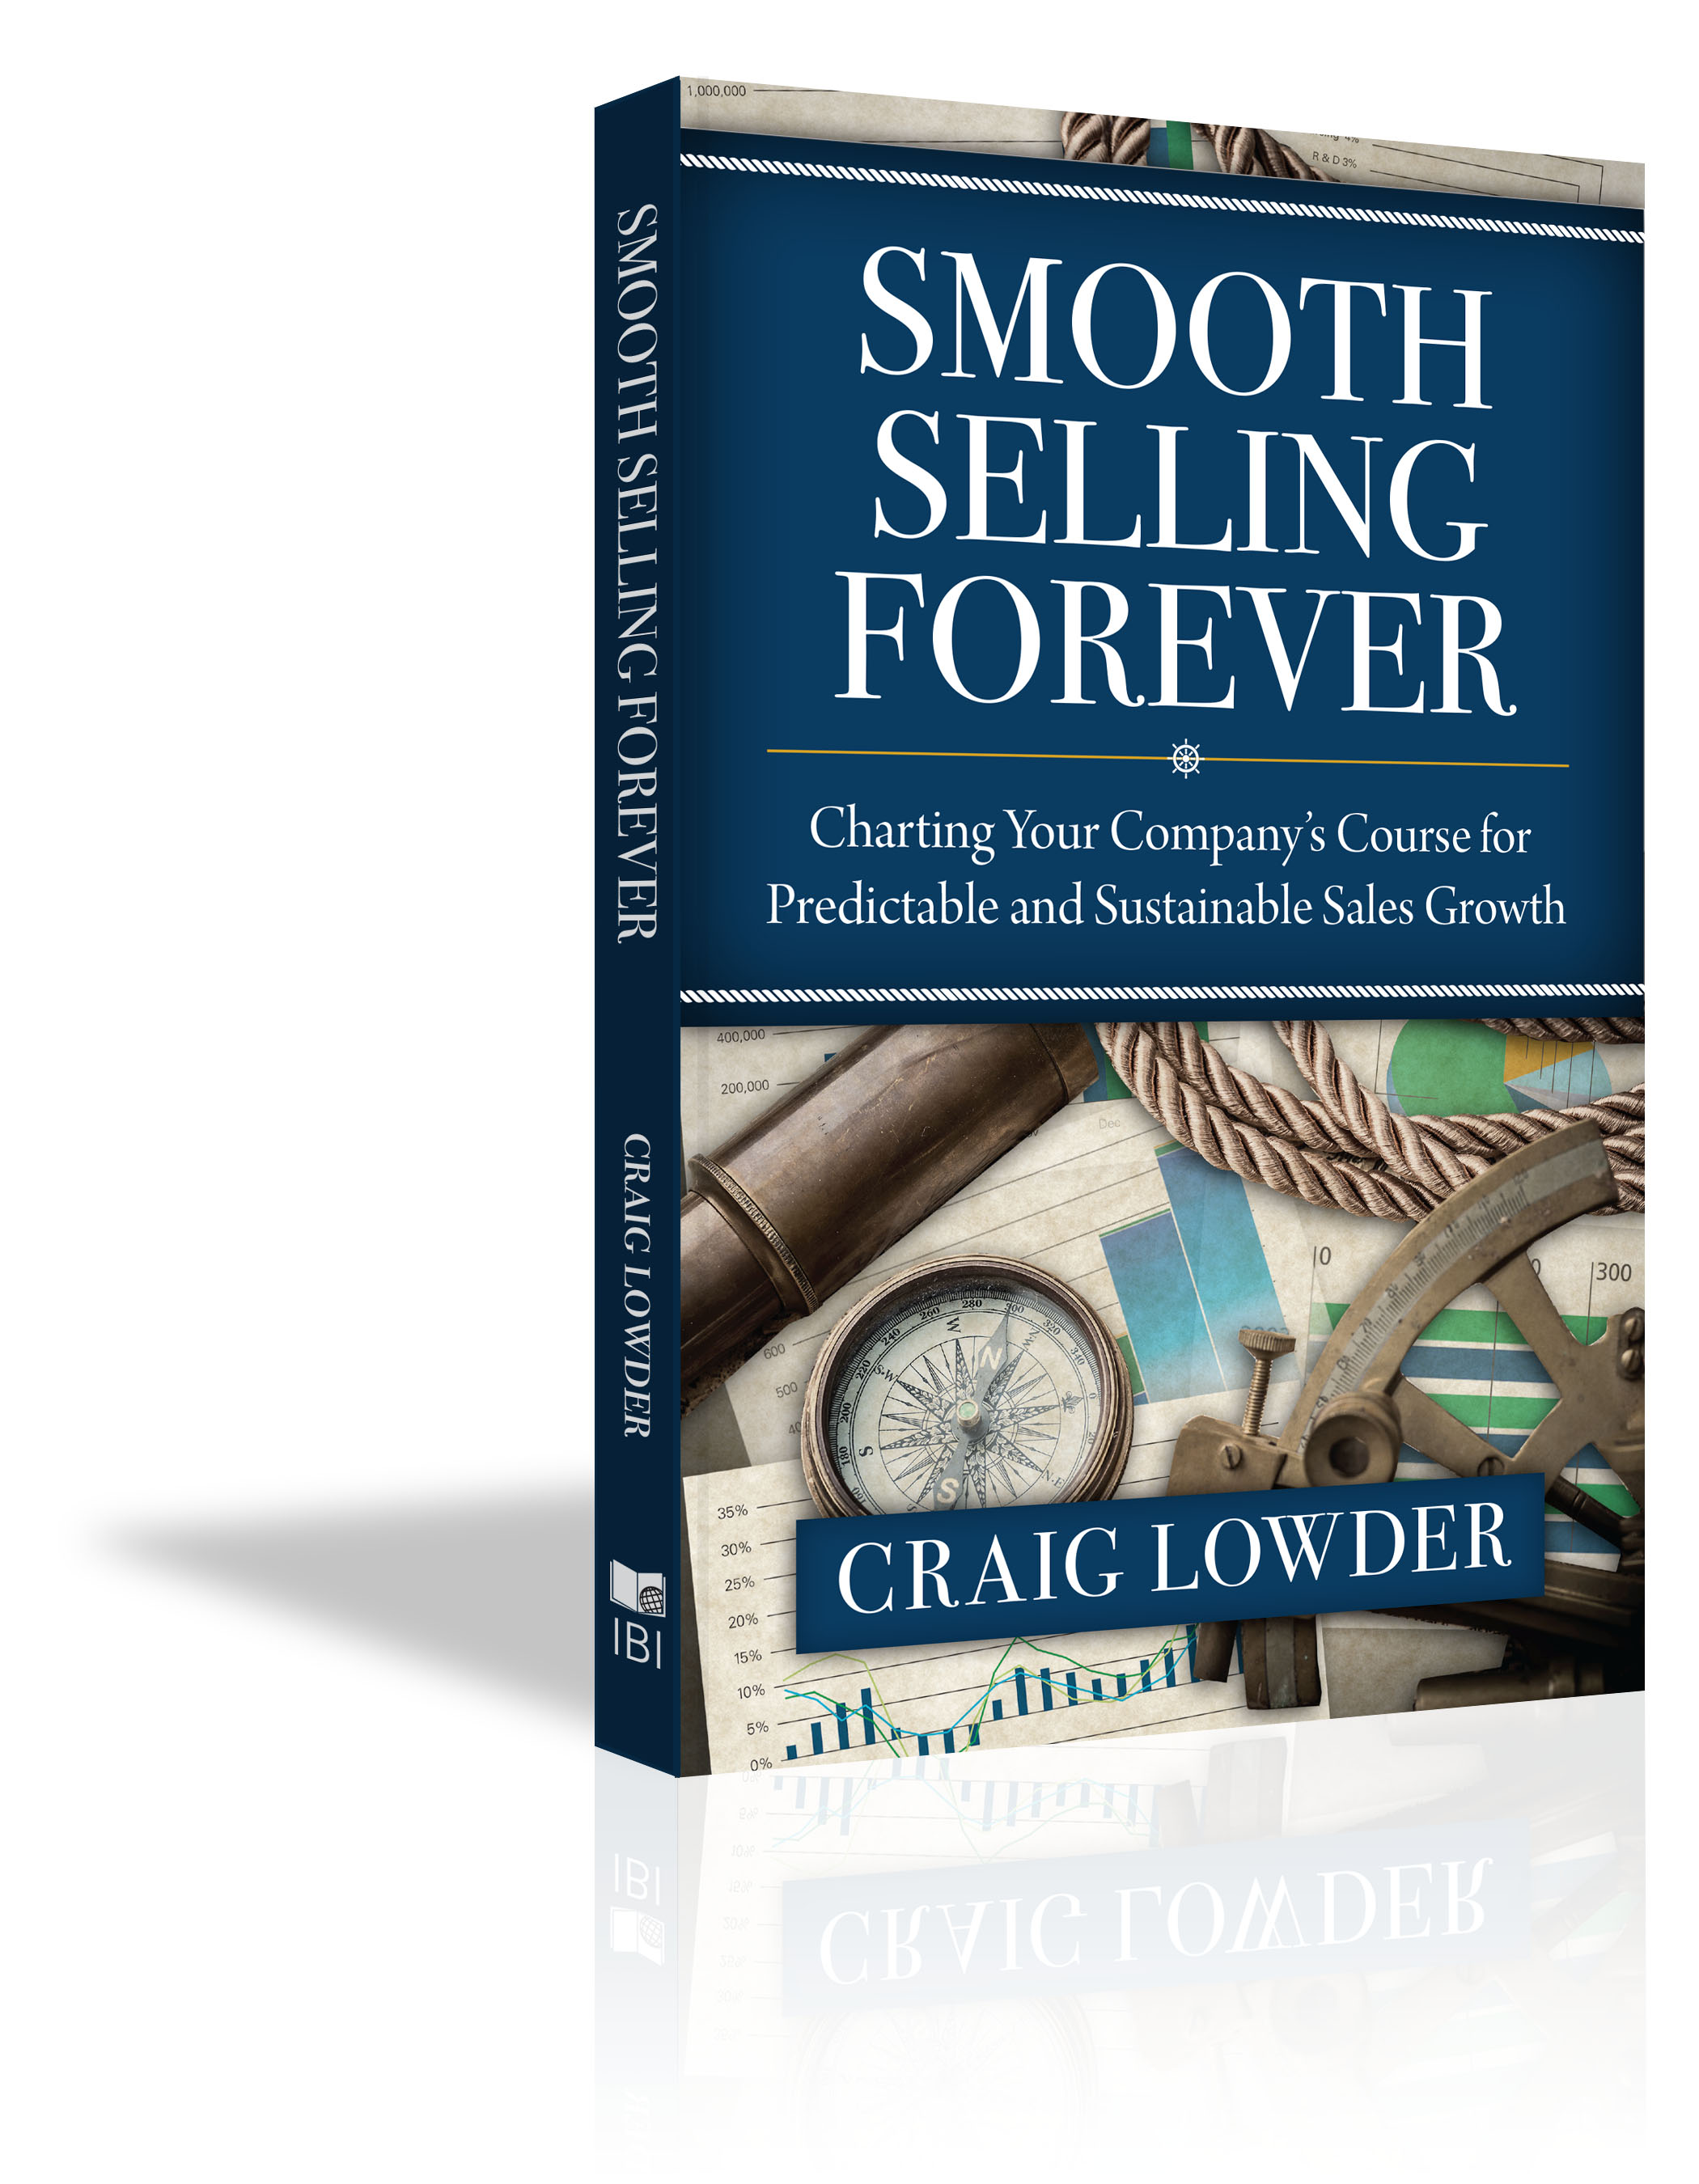 Smooth Selling Forever - Craig Lowder